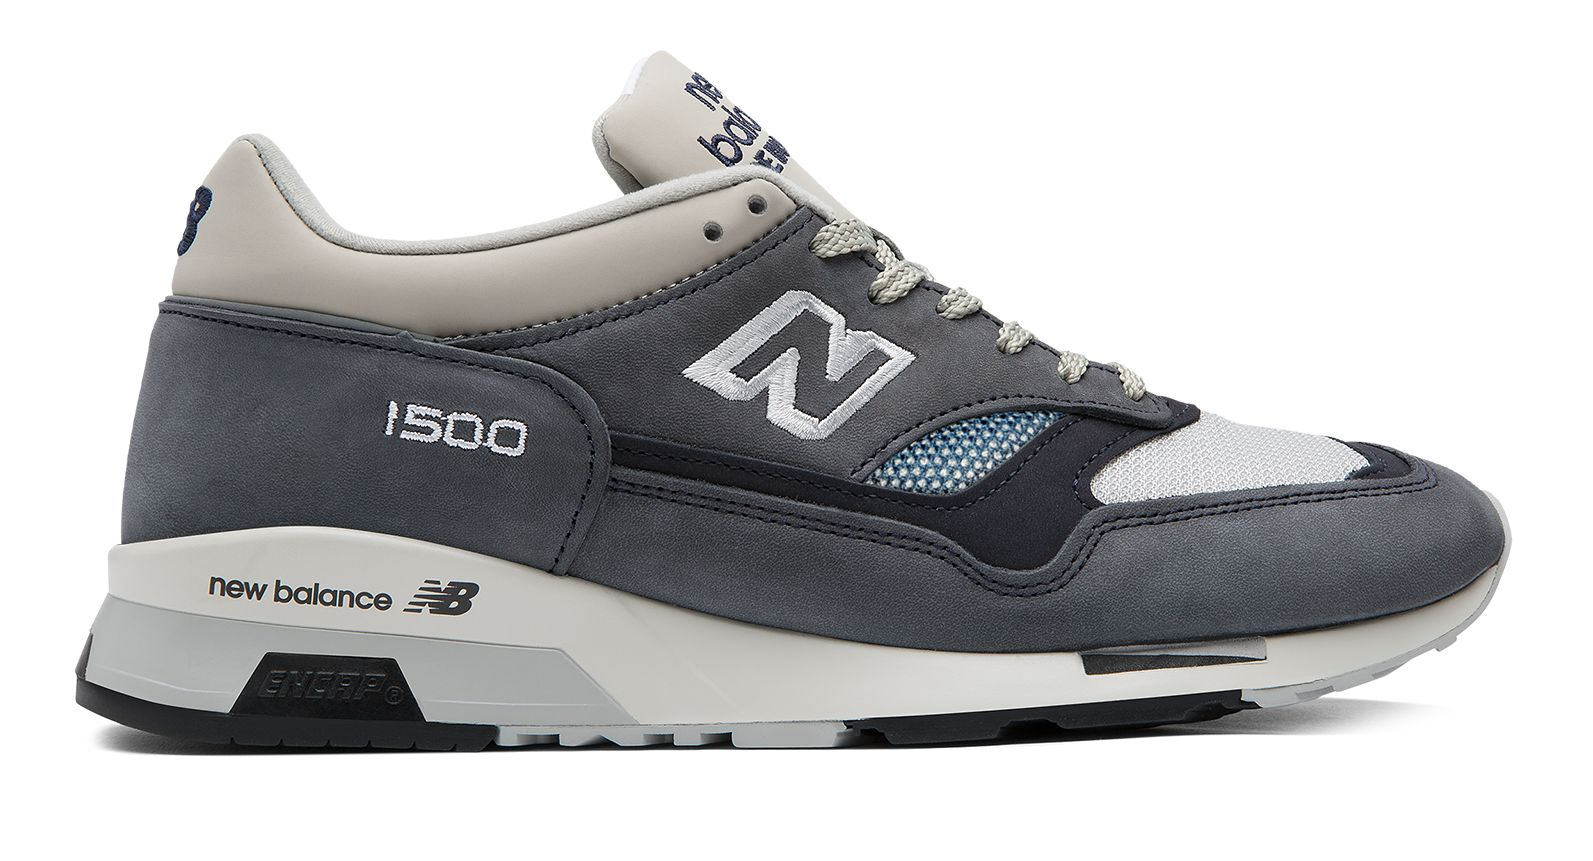 NB 1500 Nubuck, Grey with Navy